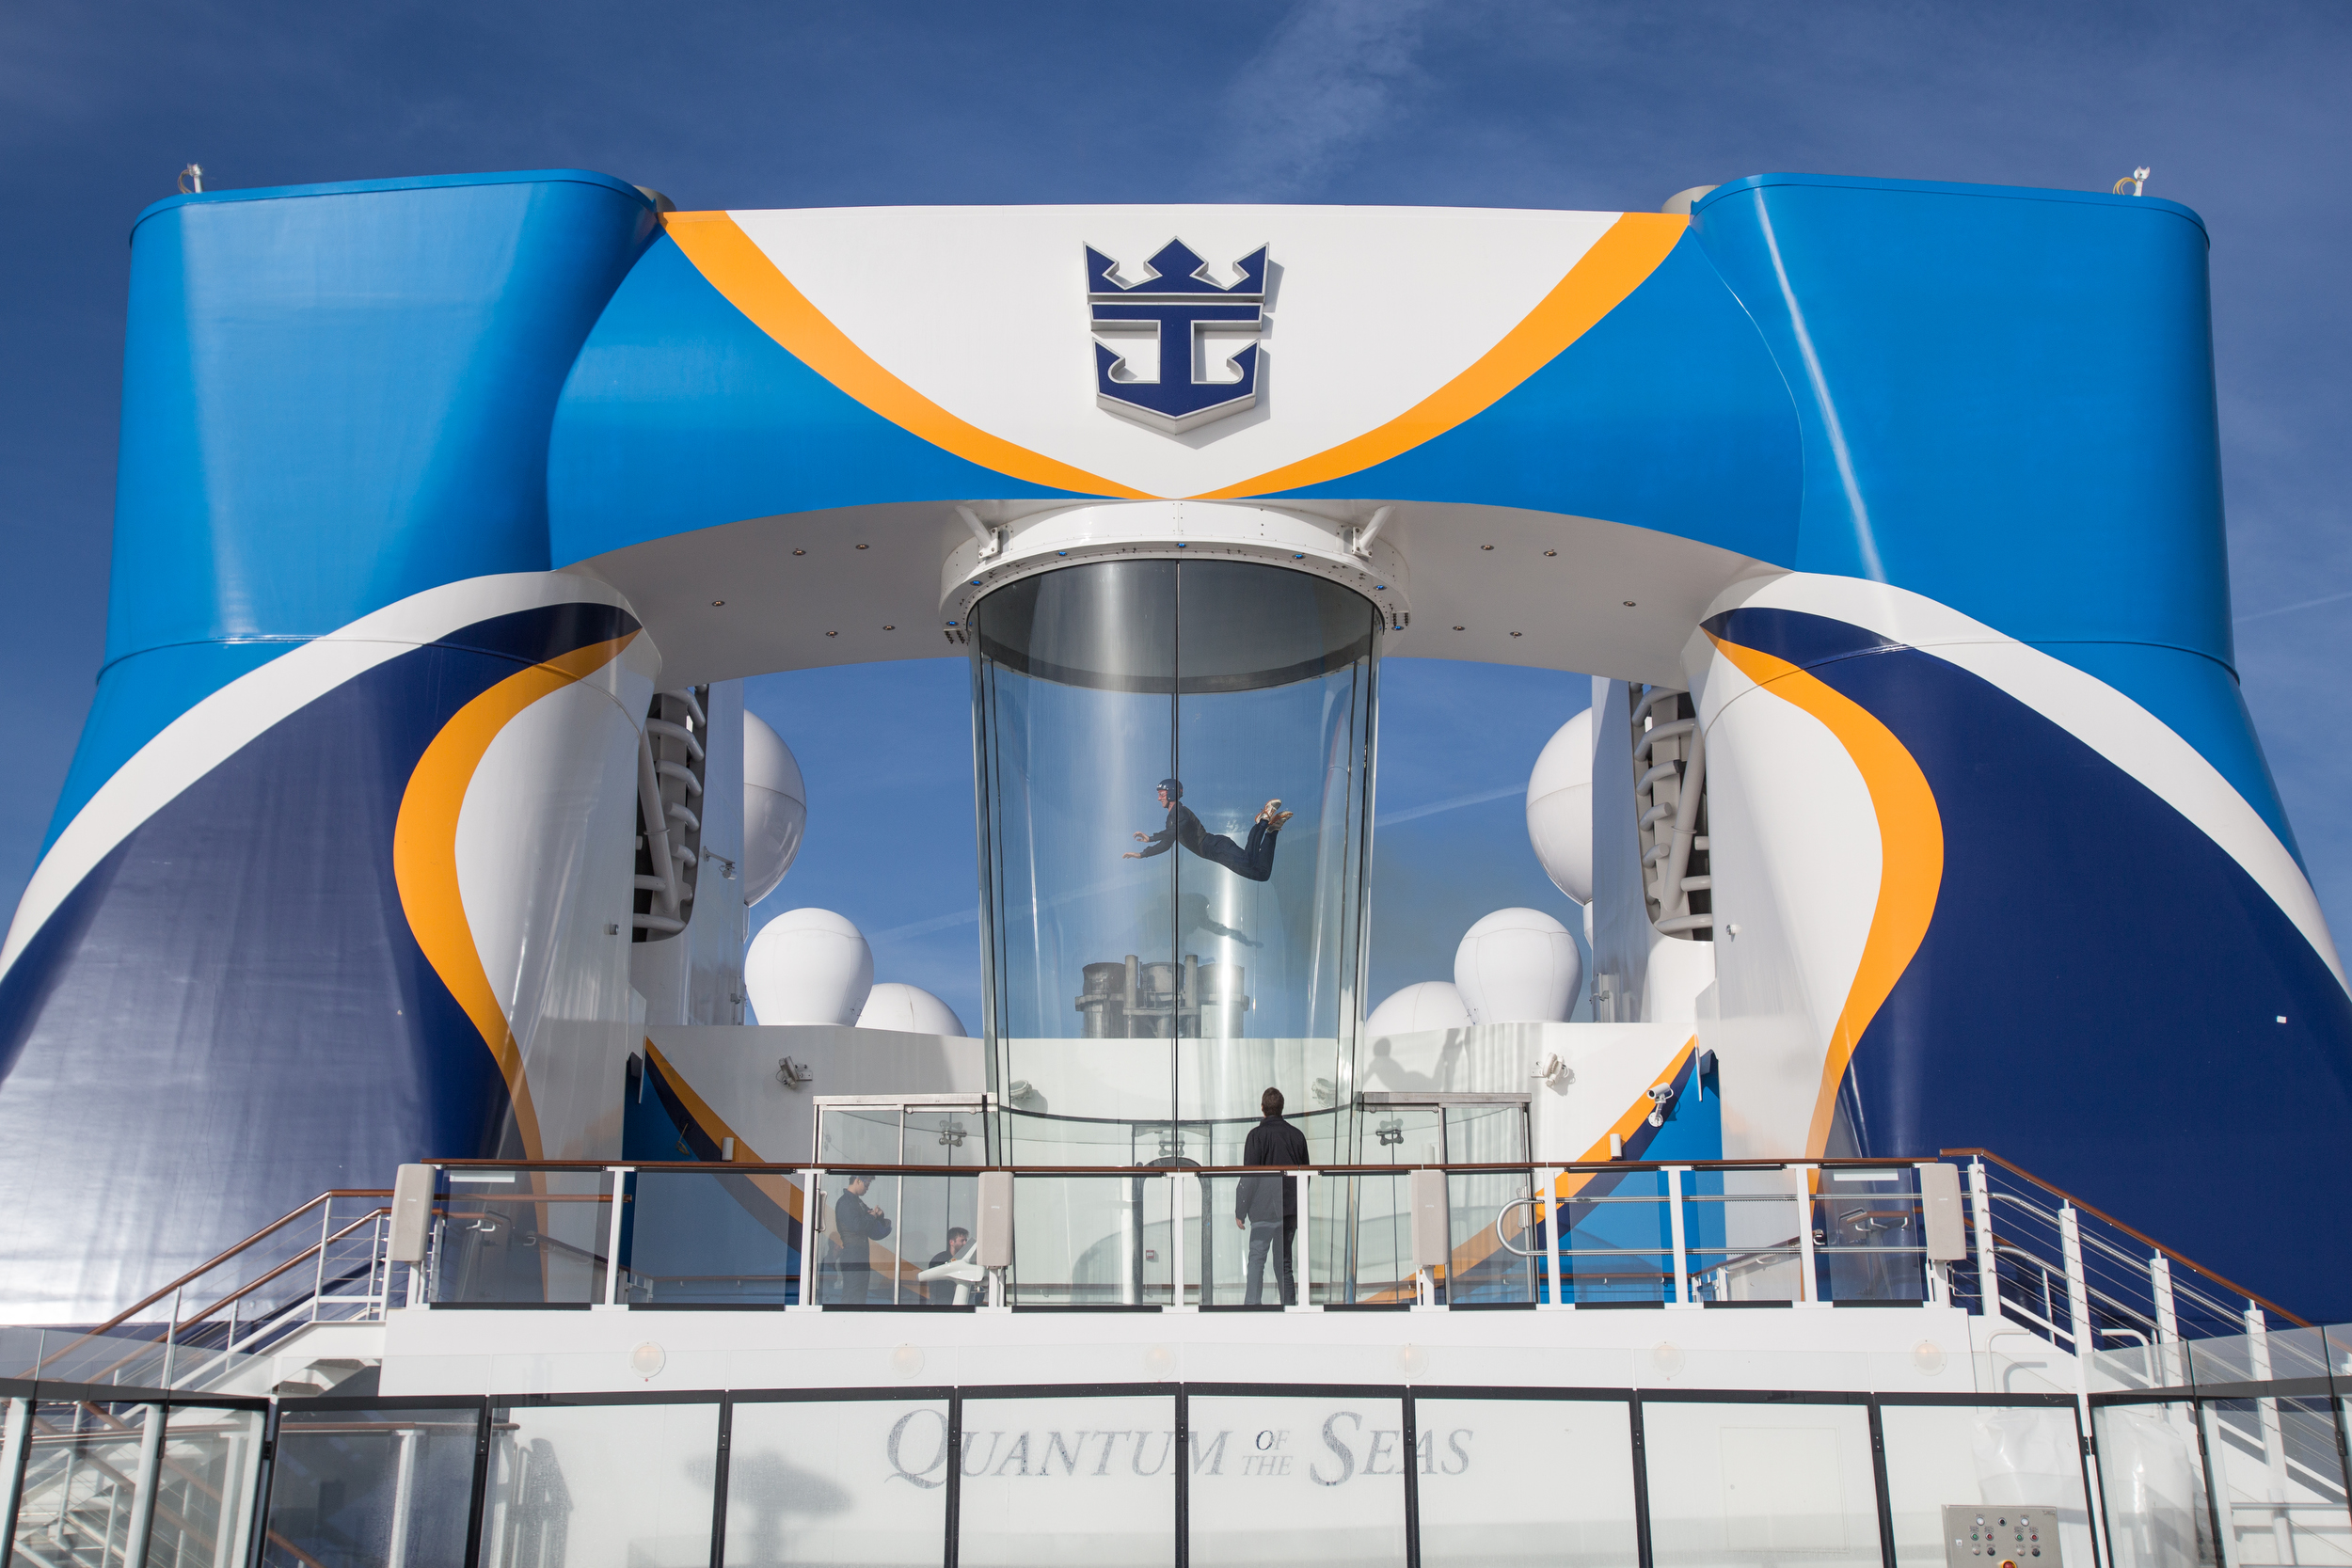 Royal Caribbean Ripcord by Iflyer skydiving simulator.